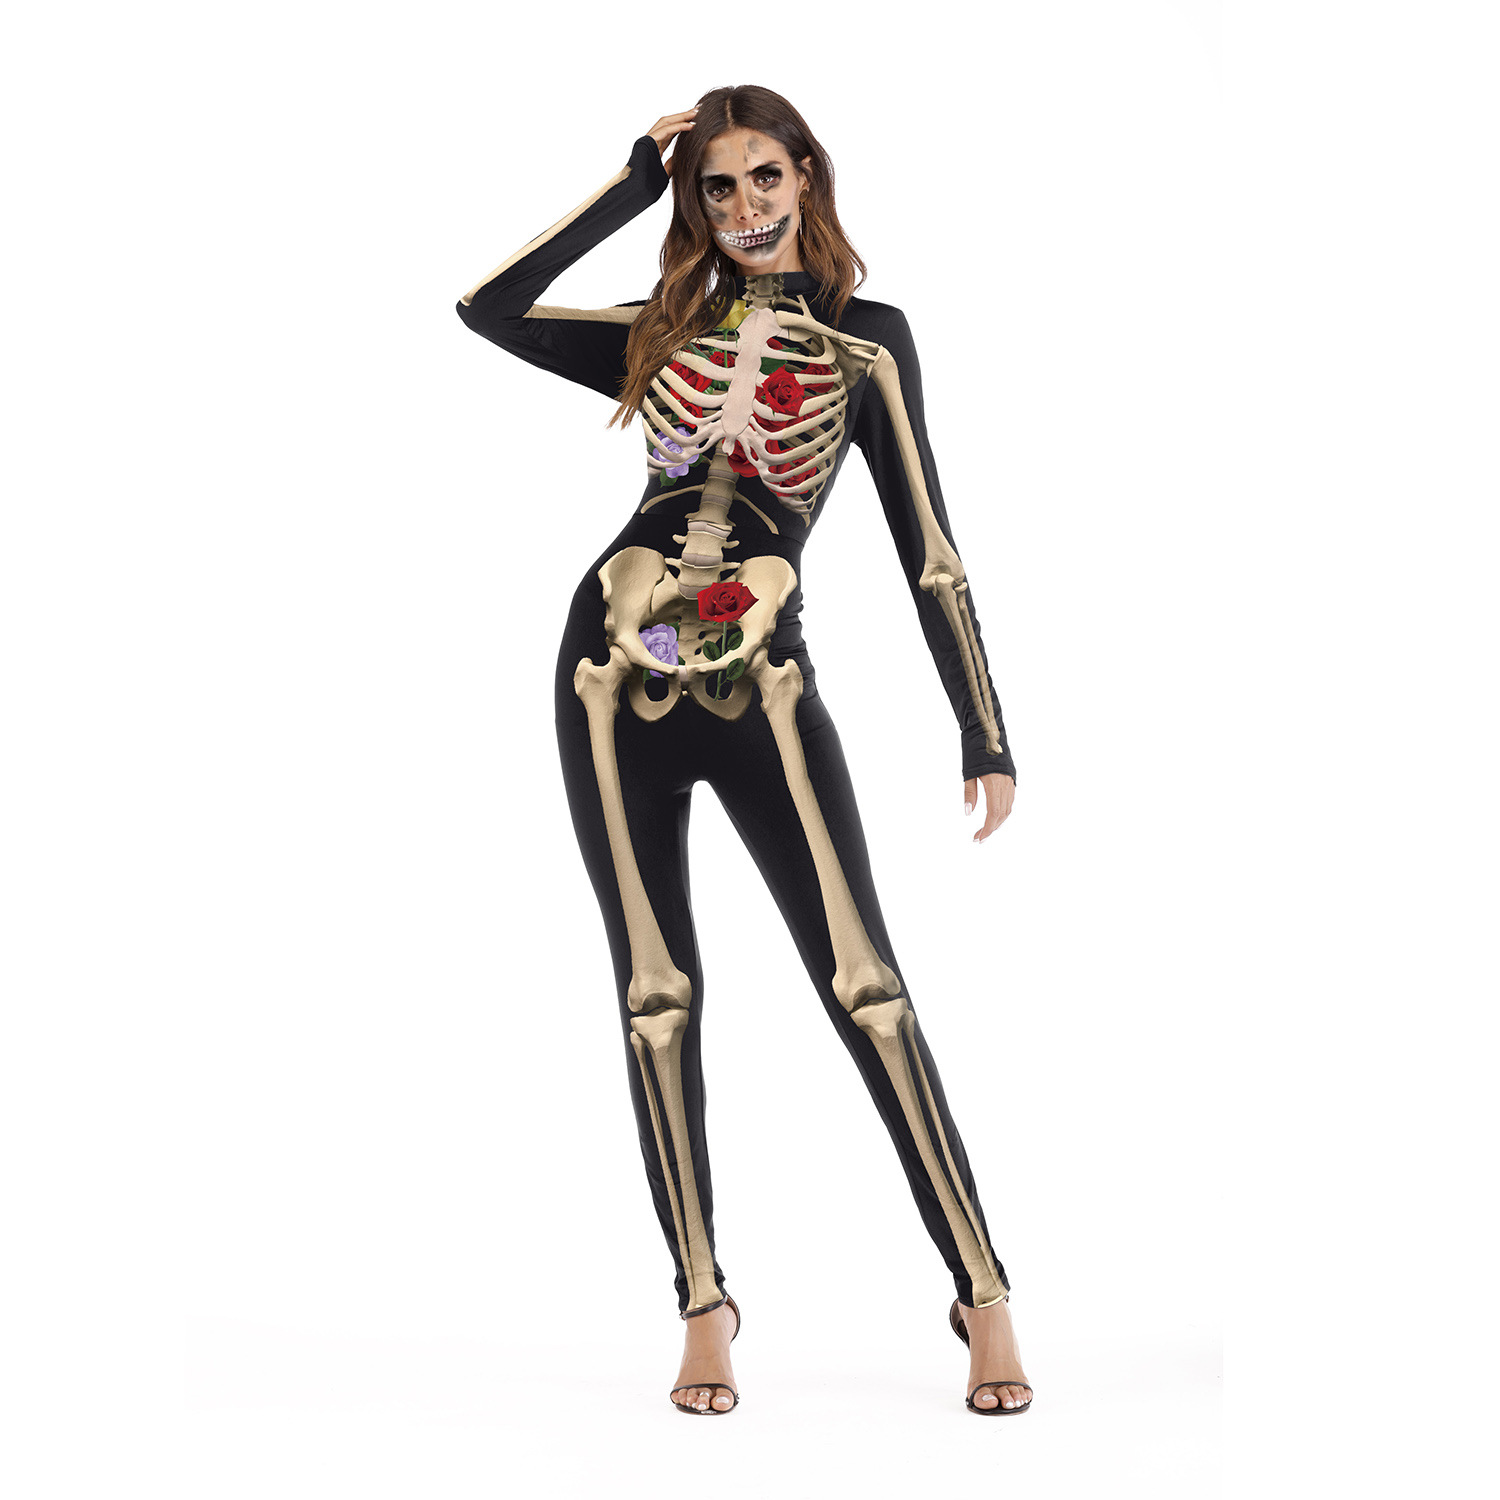 Halloween Costumes For Women 2019.Us 19 9 15 Off 2019 Hot Skull Body Suit Skeleton Jumpsuit Halloween Costumes For Women Scary Ladies Costumes For Halloween Cosplay Disfraces On